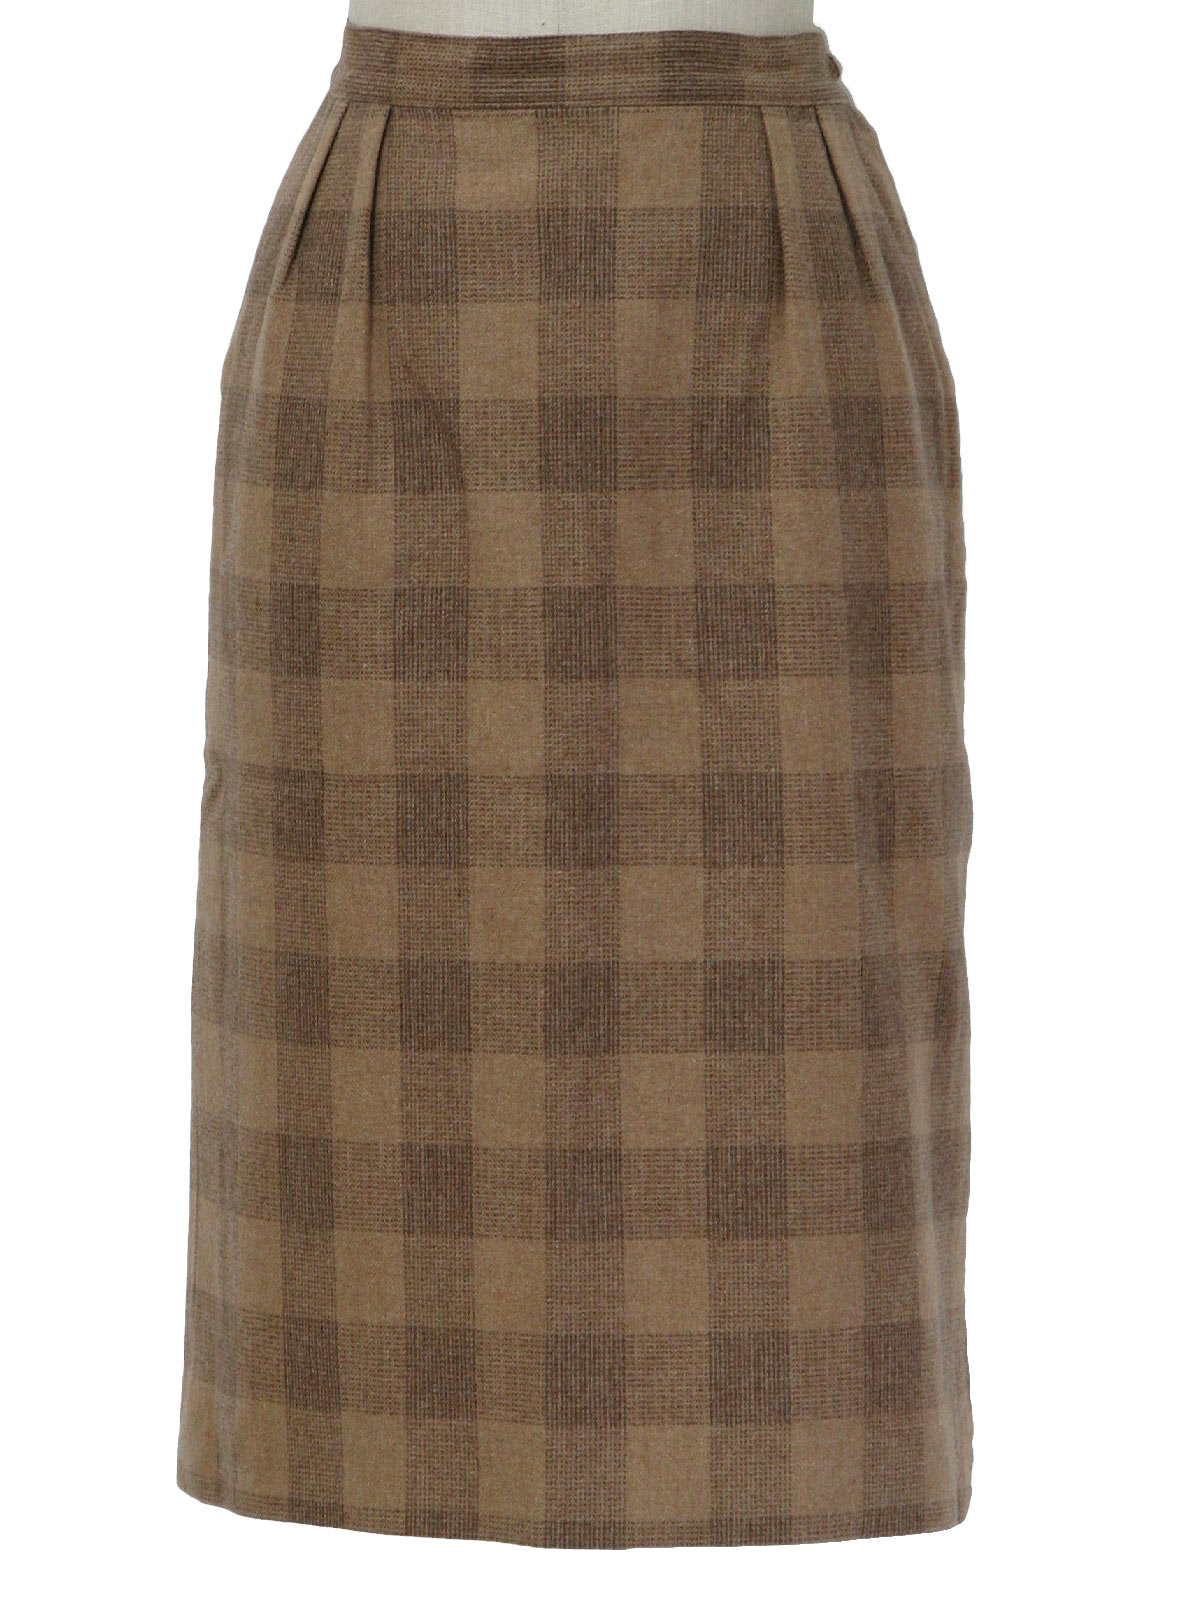 e8096cad0a4f Pendleton 70 s Vintage Wool Skirt  70s -Pendleton- Womens light and ...